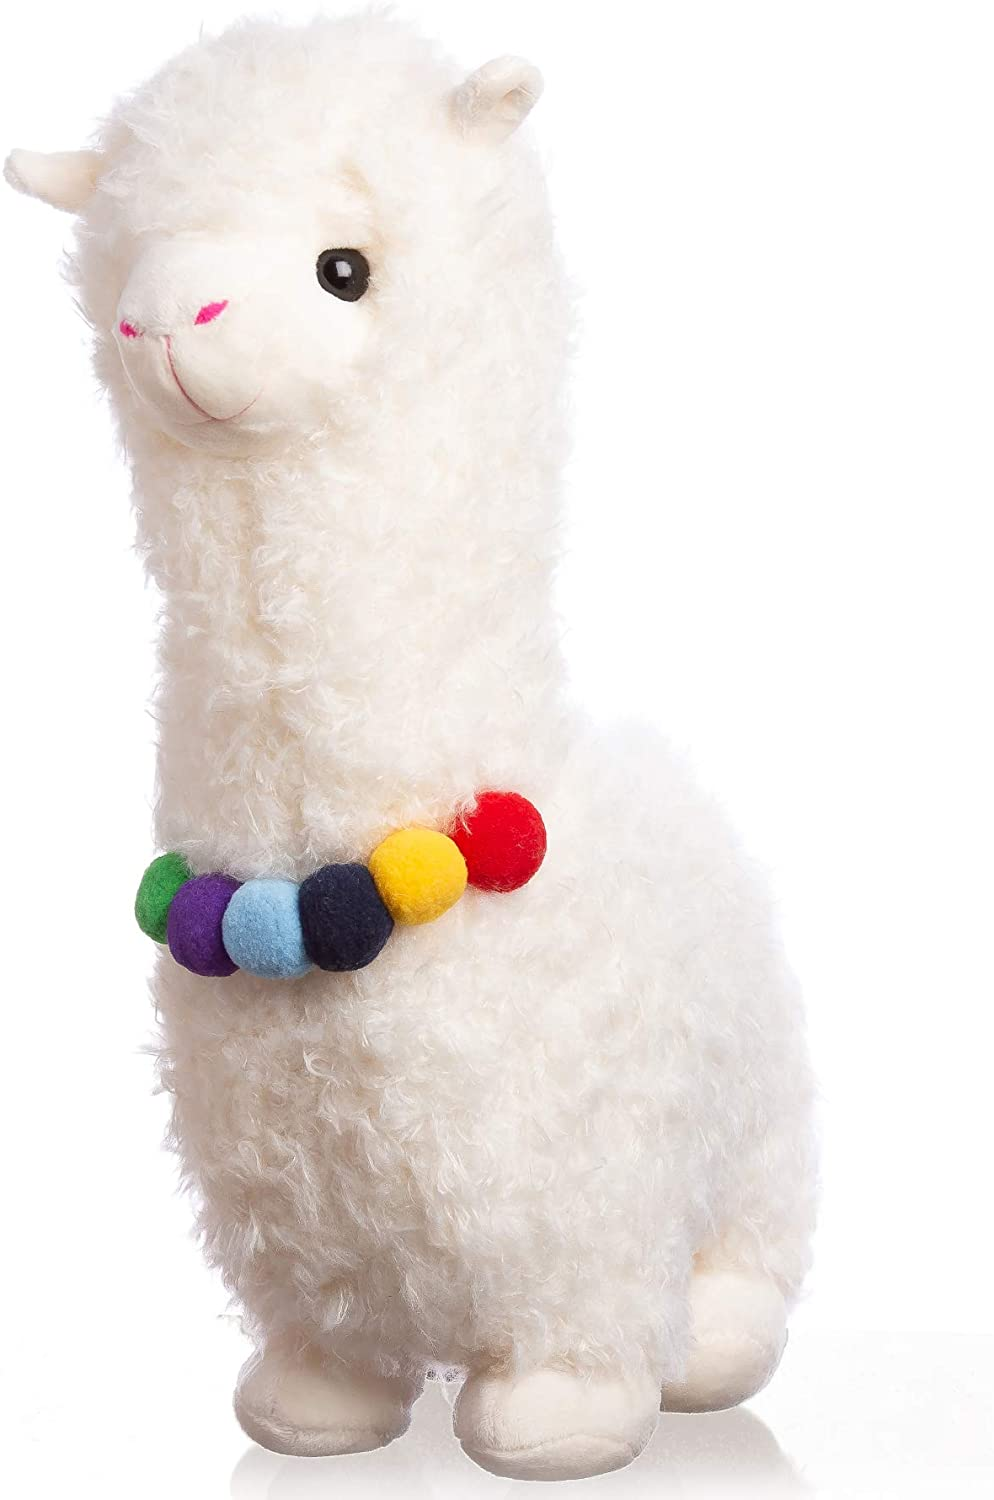 Llama Stuffed Animal - Llama Gifts for Women - Party Alpaca Pillow with LED Color-Changing Lights